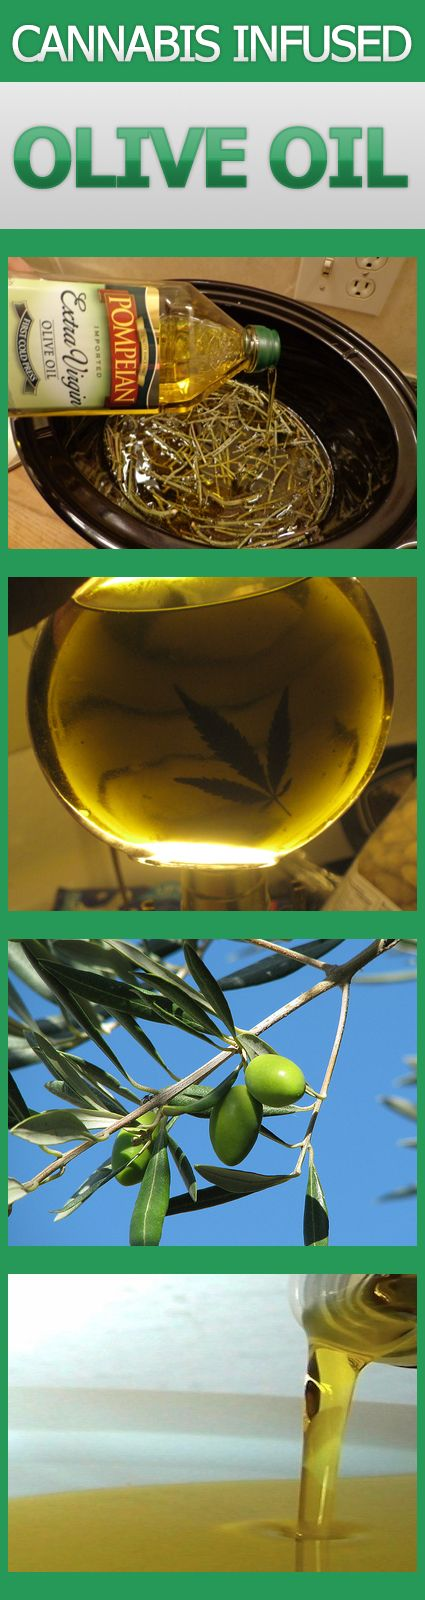 This recipe will teach you how to make your own cannabis infused olive oil. It seems like most people don't really know that you can make olive oil infused with cannabis as well. The olive oil is far healthier than butter, not to mention it won't go back on you and it's far easier to transport.